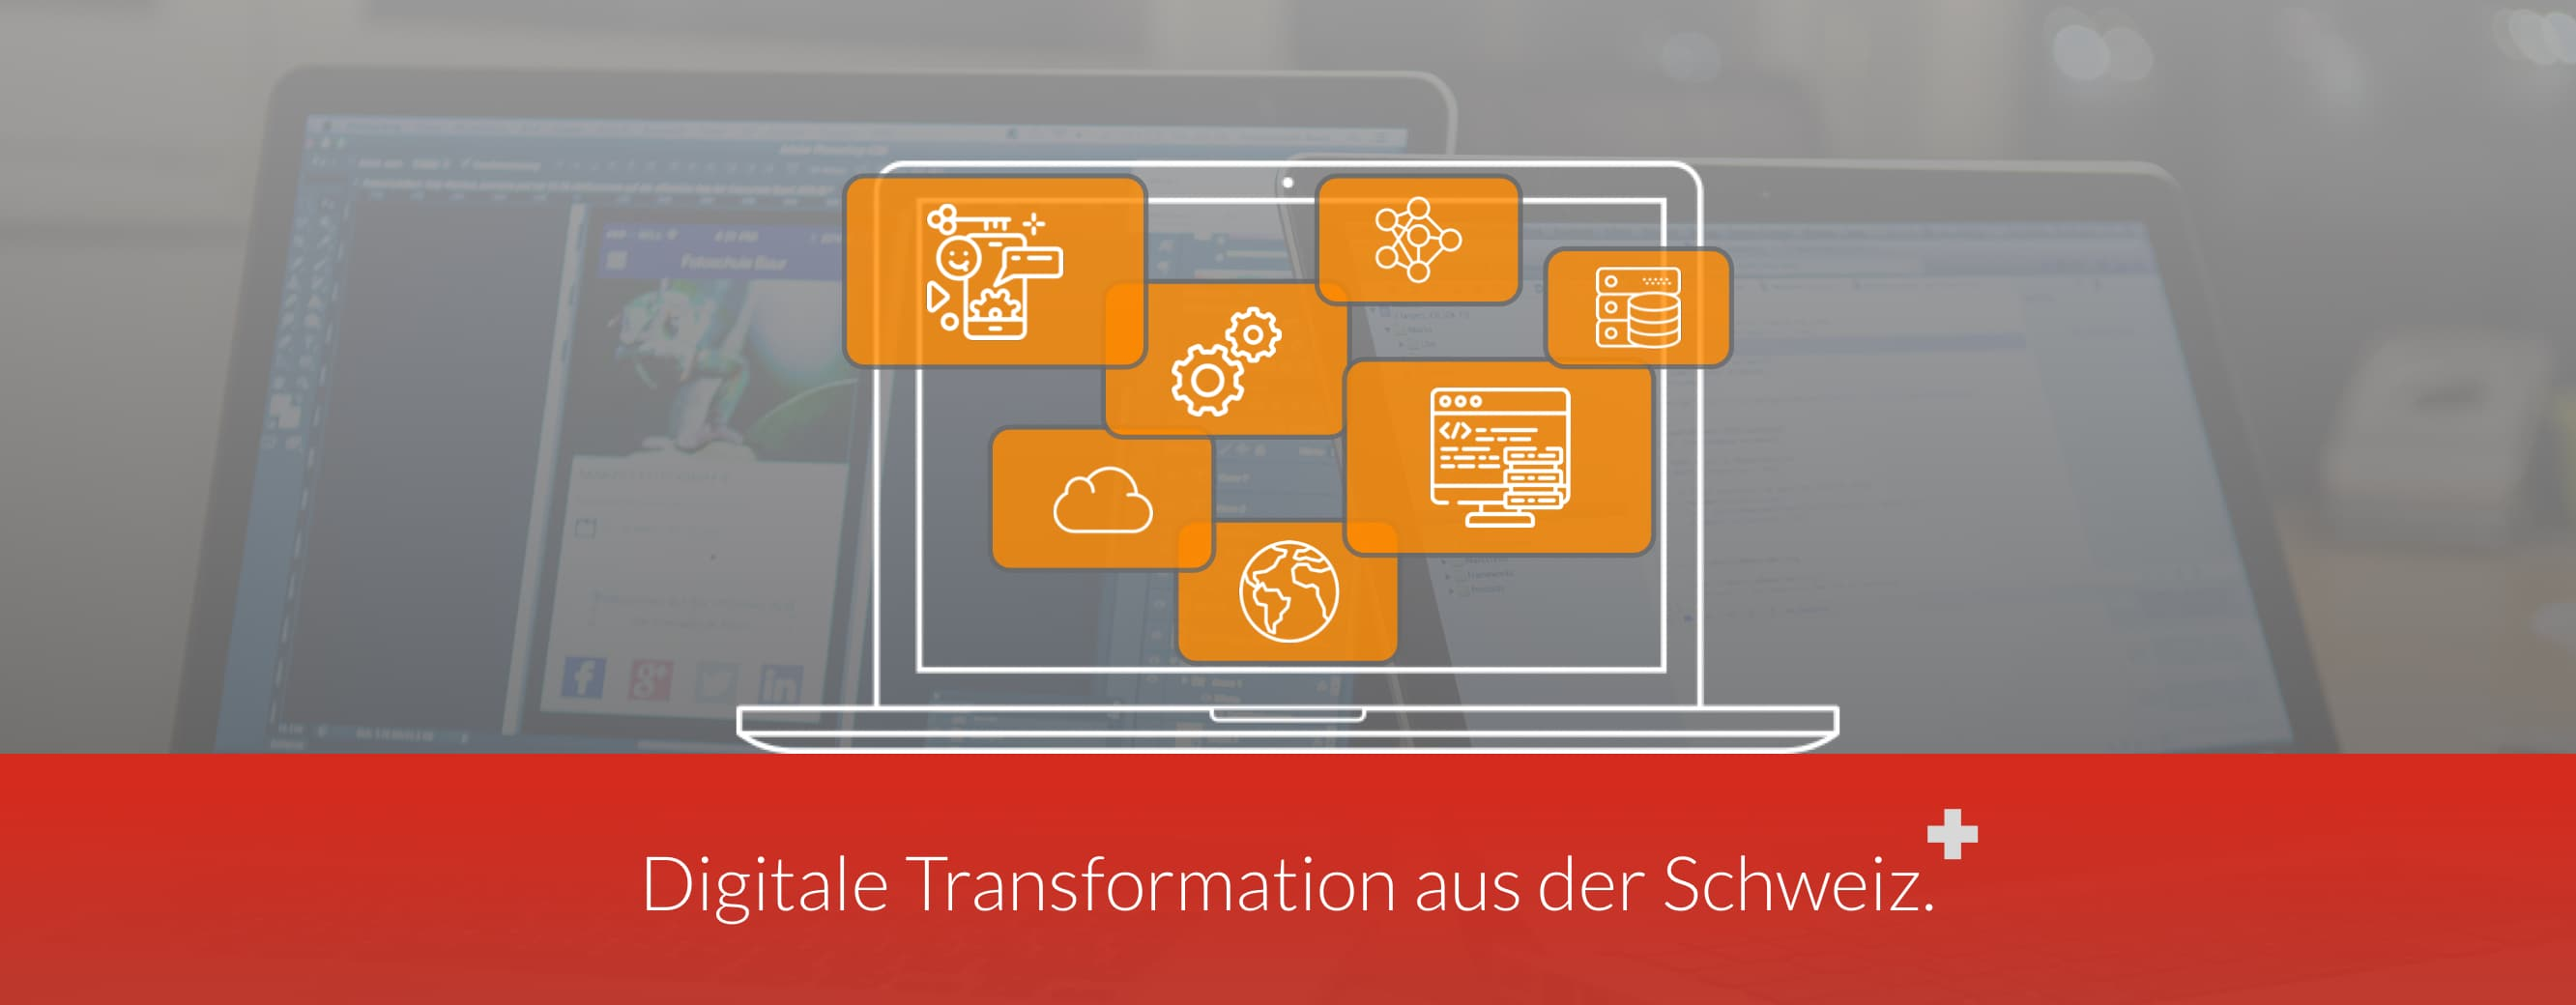 IRTECH, Ihr partner für digitale Transformation.